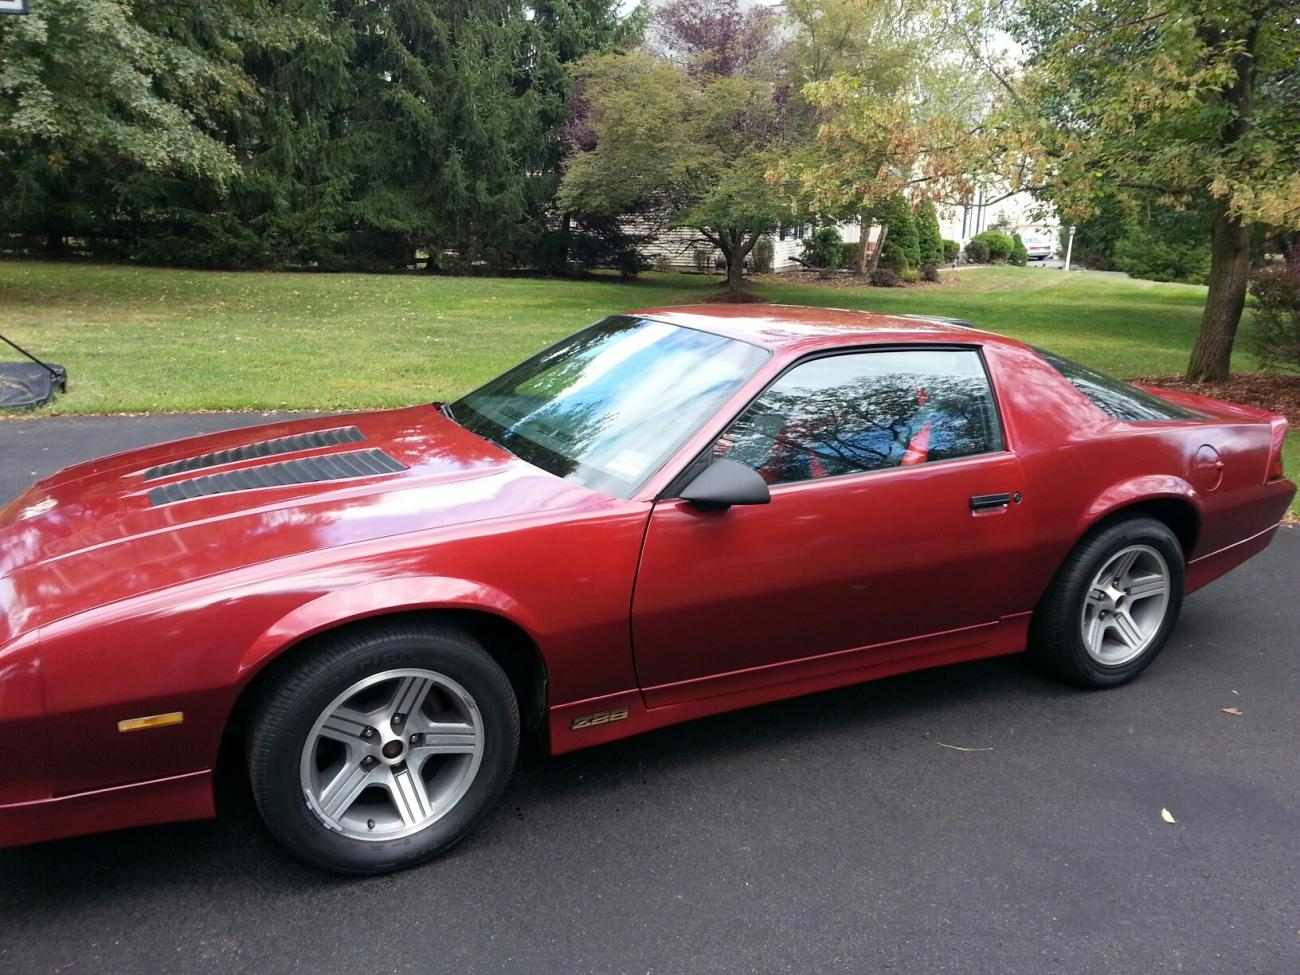 1986 Camaro Iroc Z28 For Sale Camaro5 Chevy Camaro Forum Camaro Zl1 Ss And V6 Forums